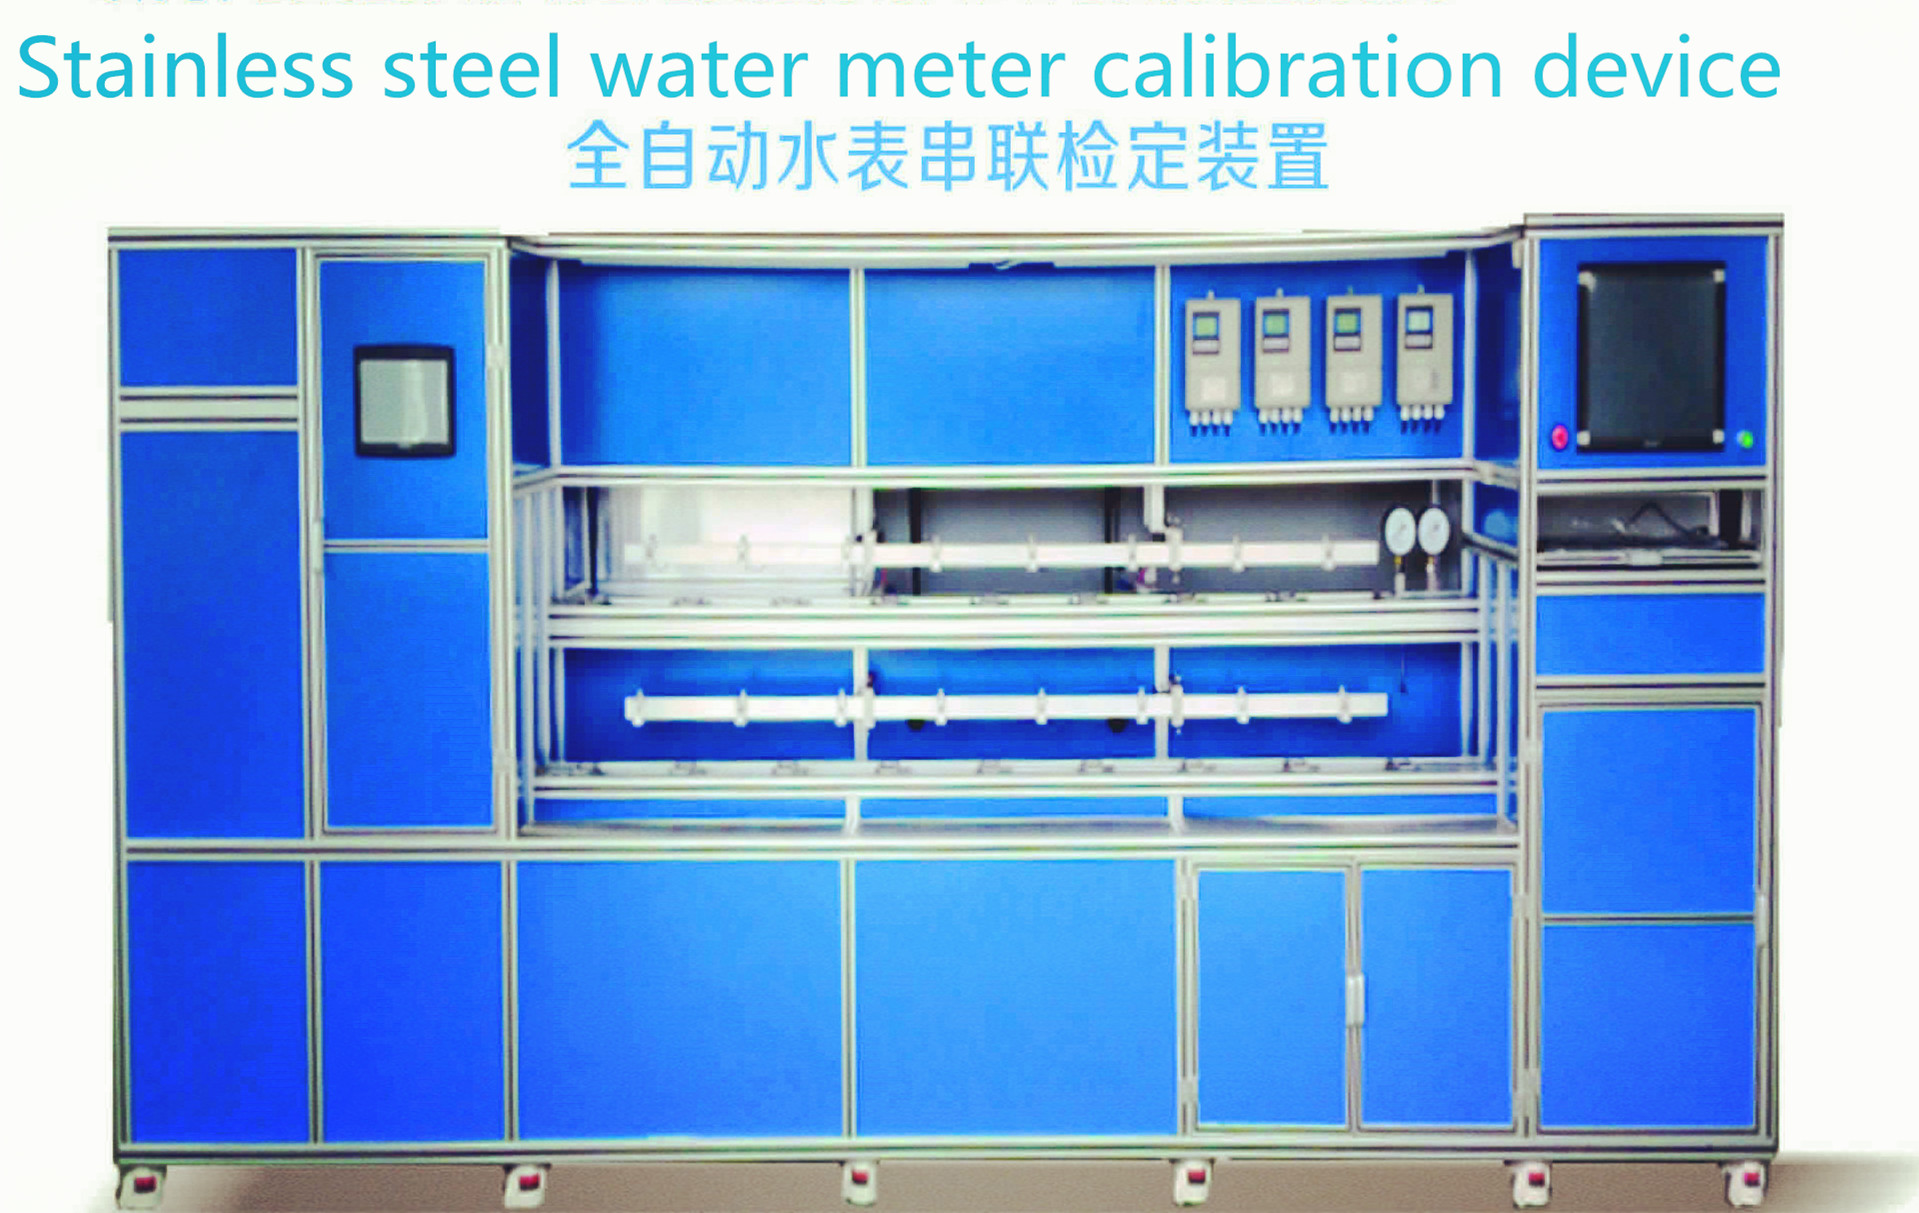 Stainless steel water meter calibration device